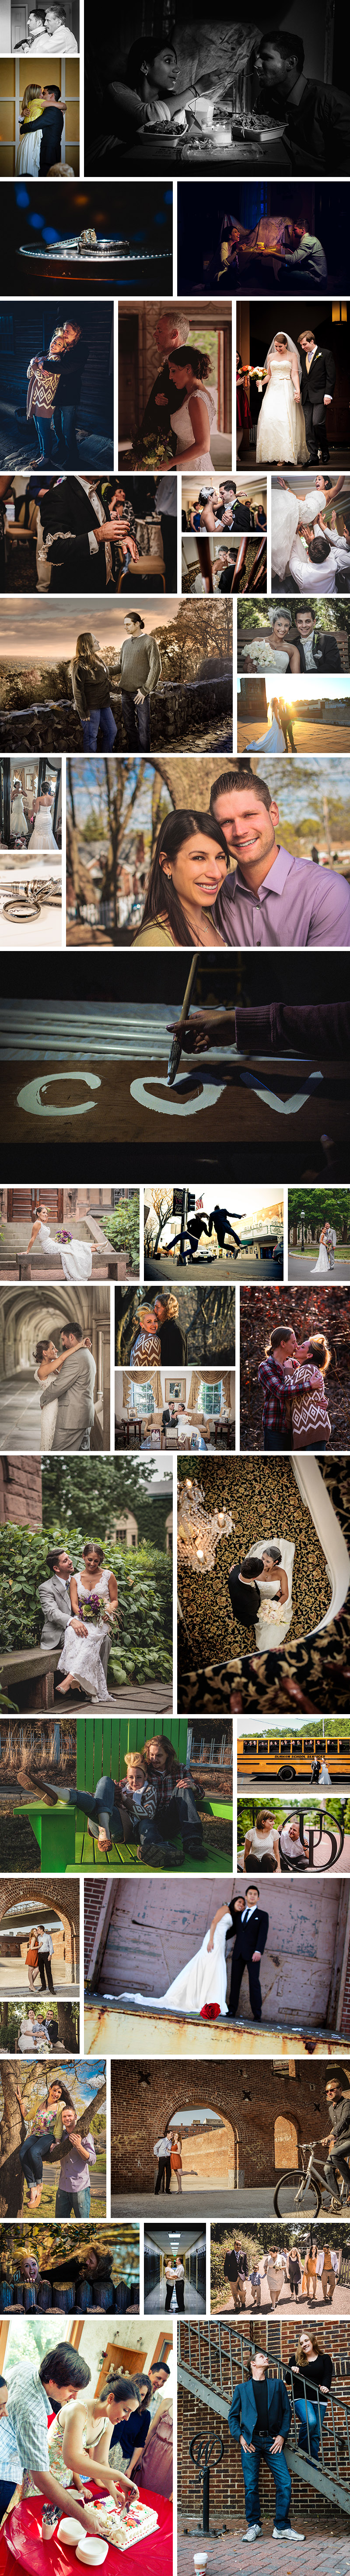 Sztybel wedding photograph collage